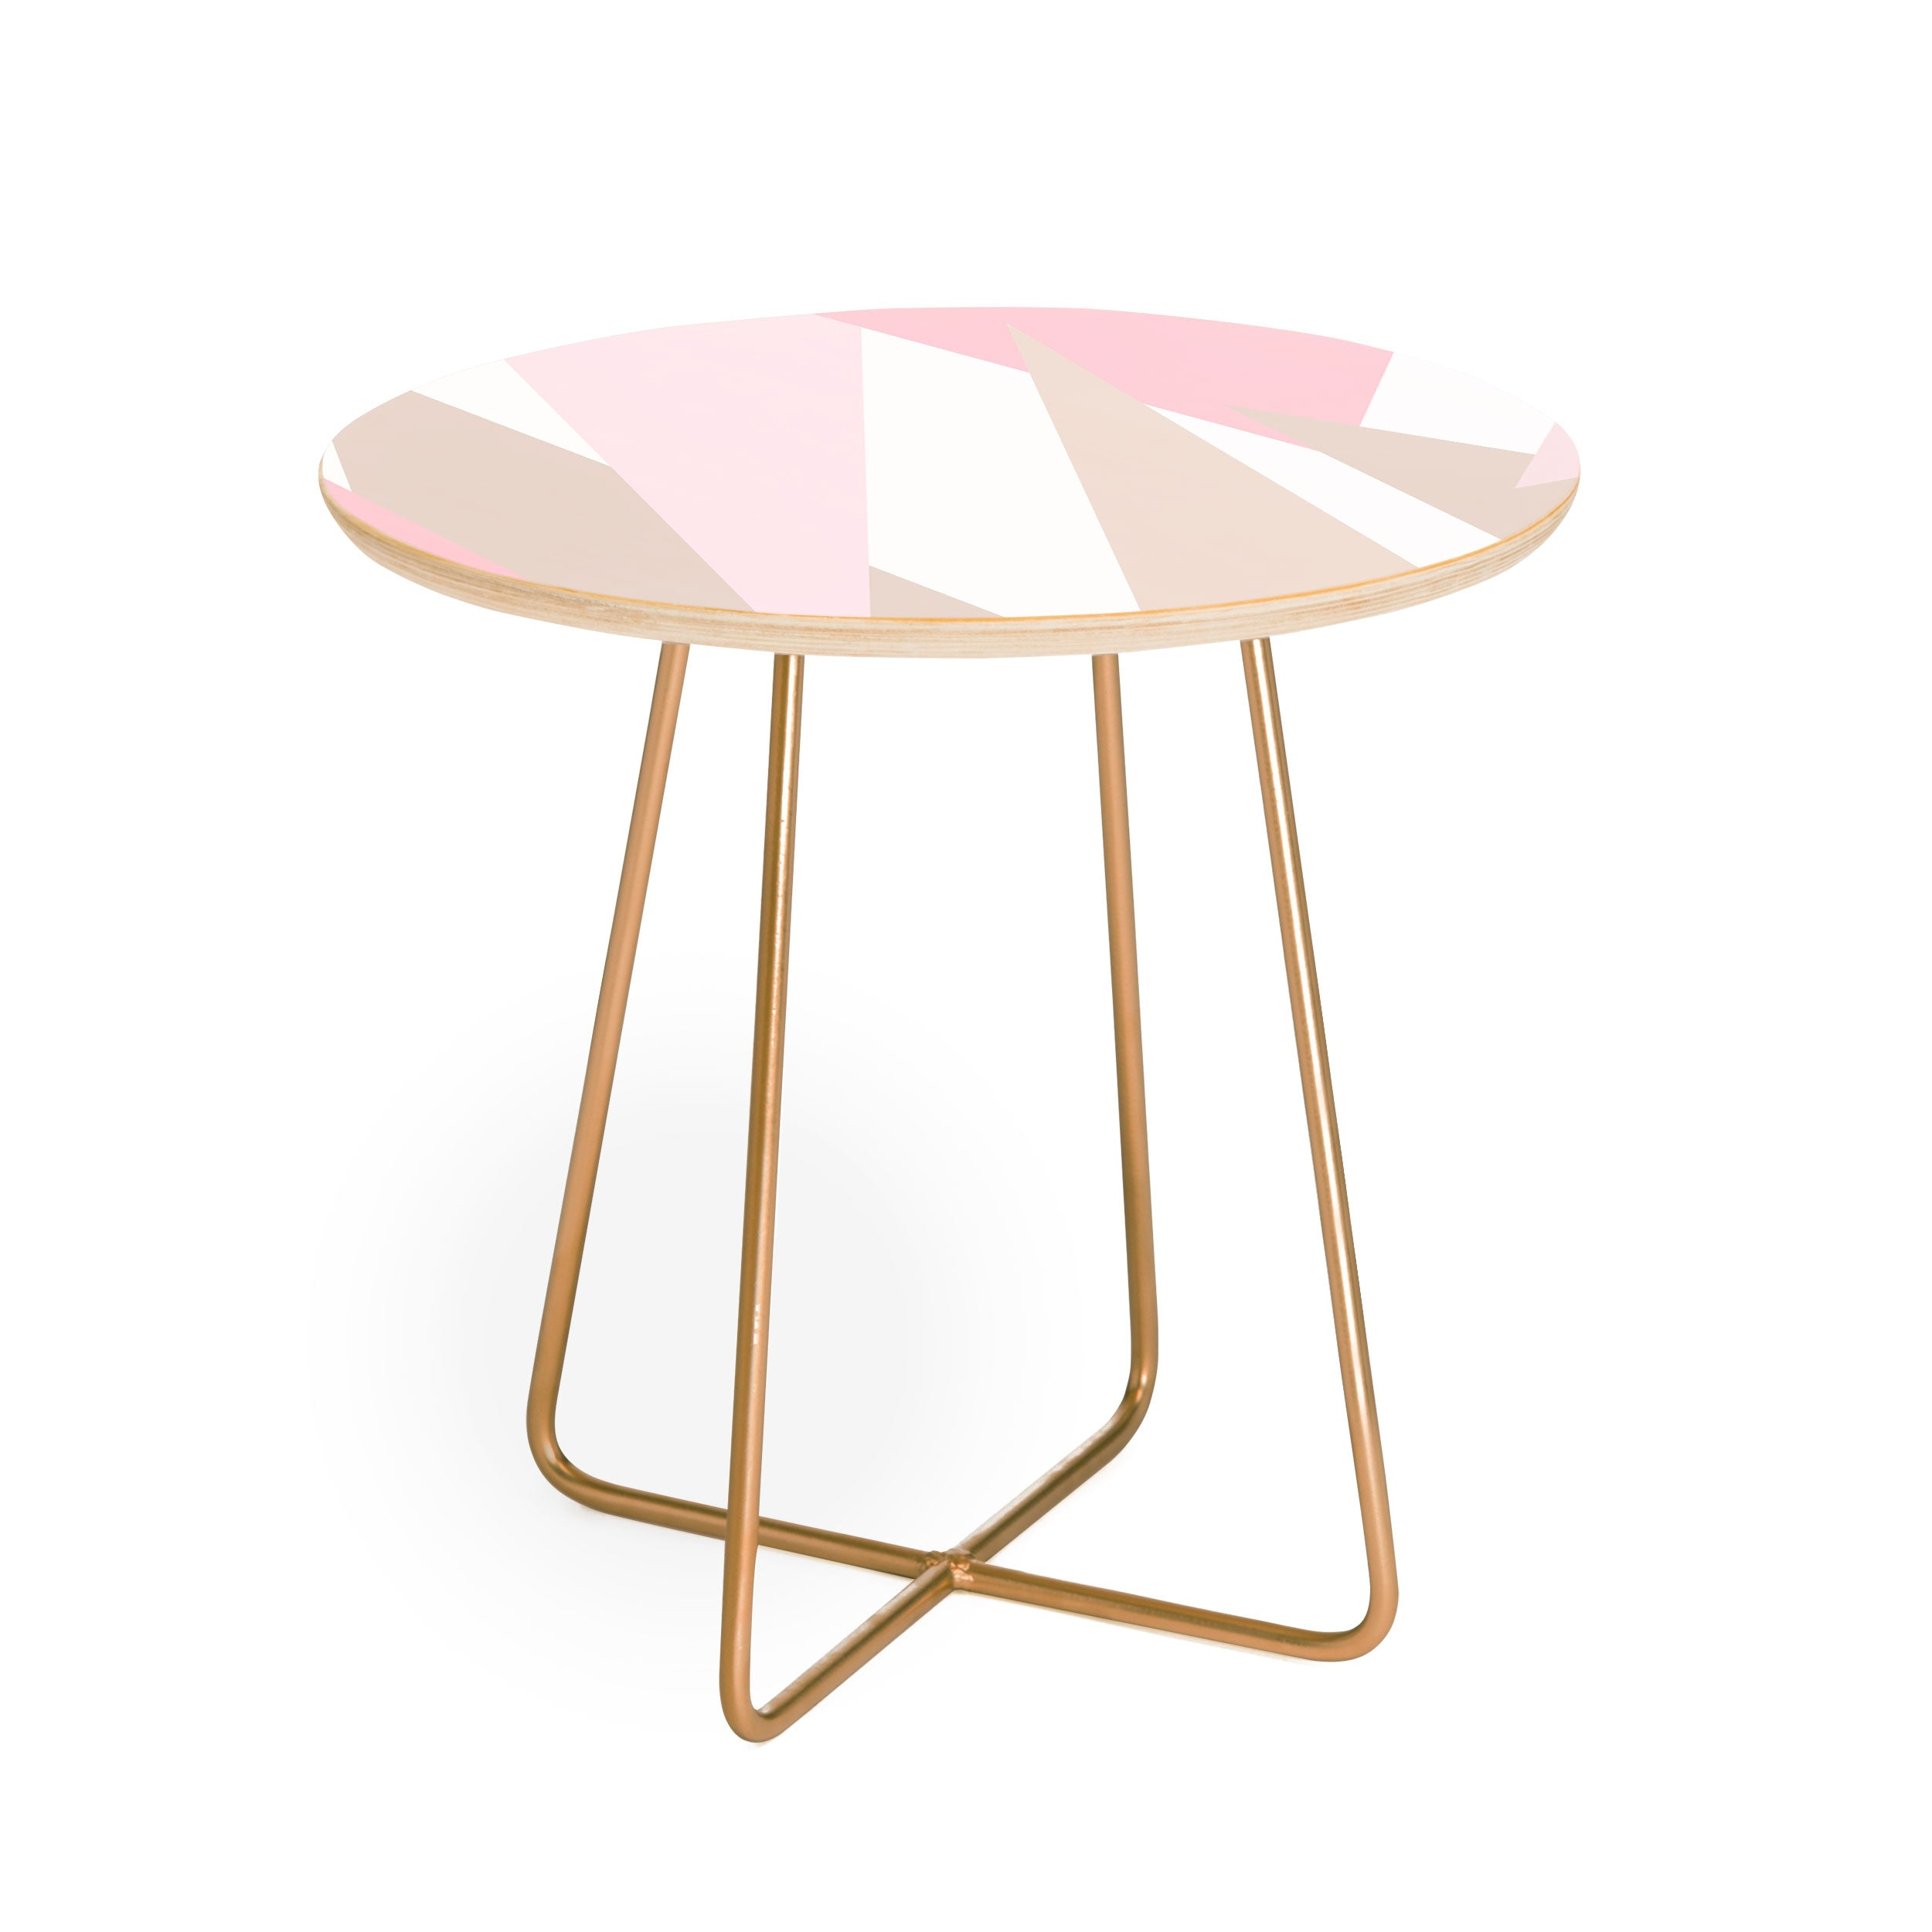 Allyson Johnson Blush Mod Round Side Table